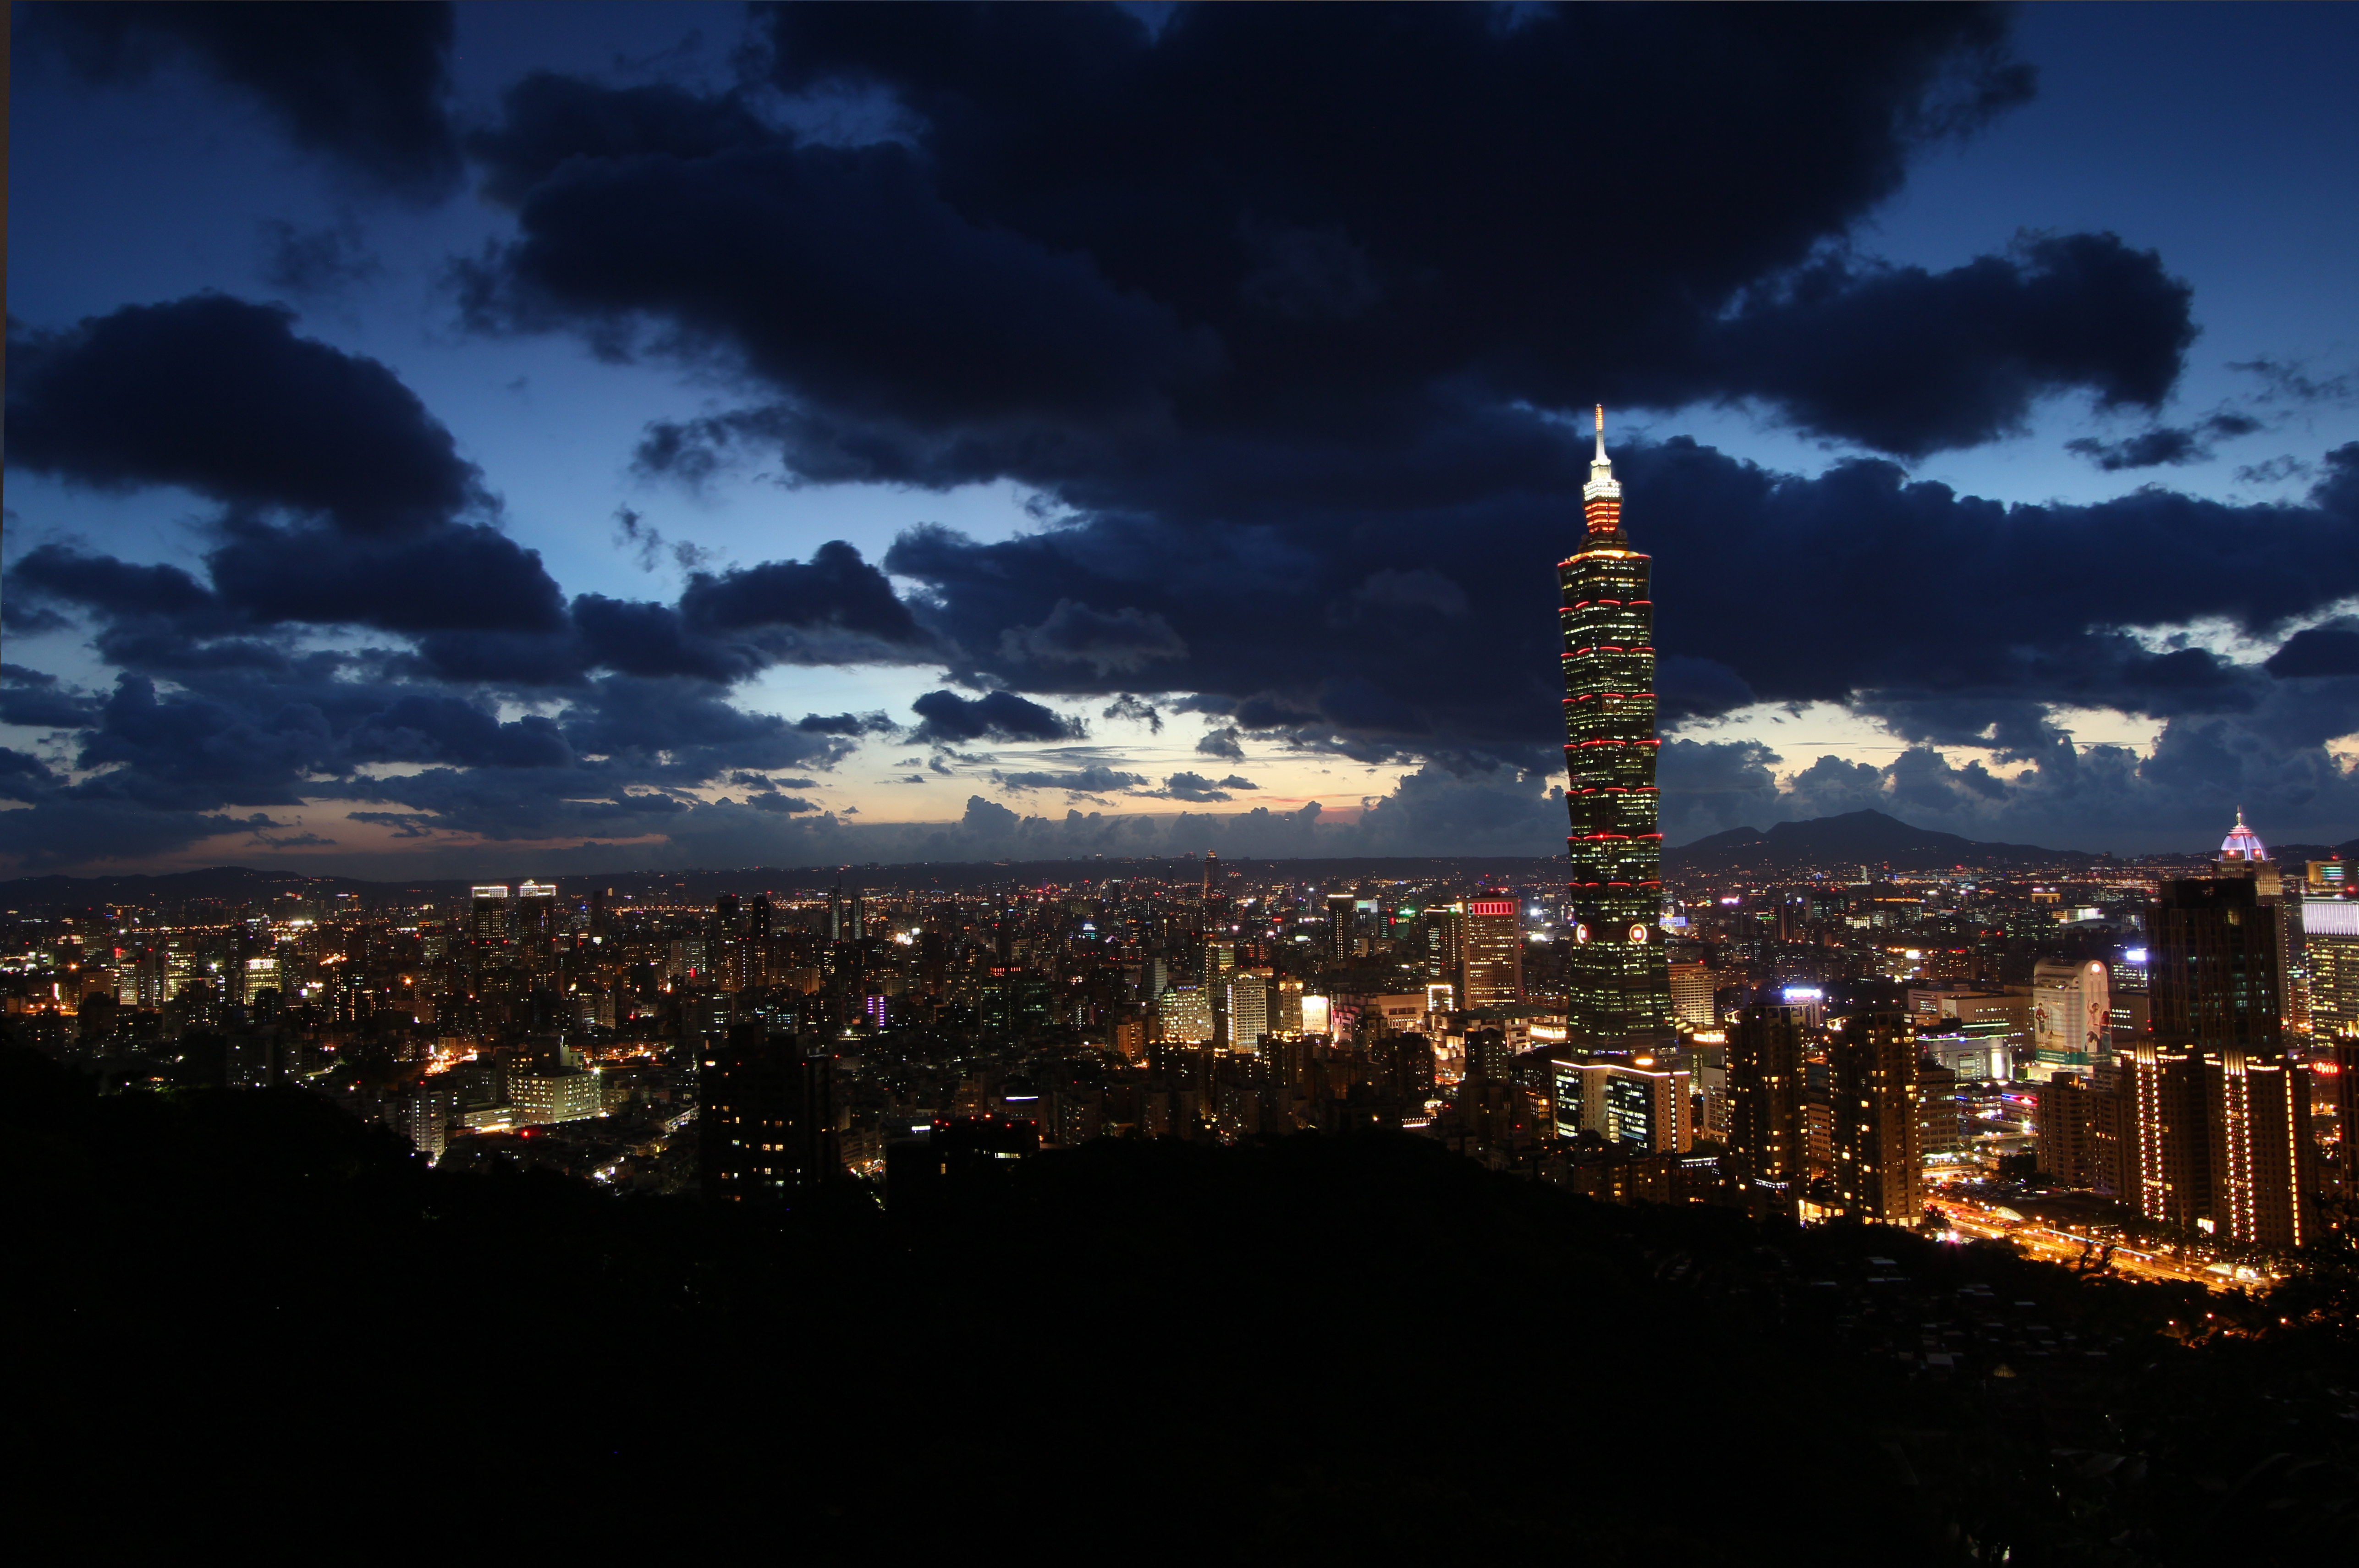 taipei 5k retina ultra hd wallpaper and background image | 5147x3421